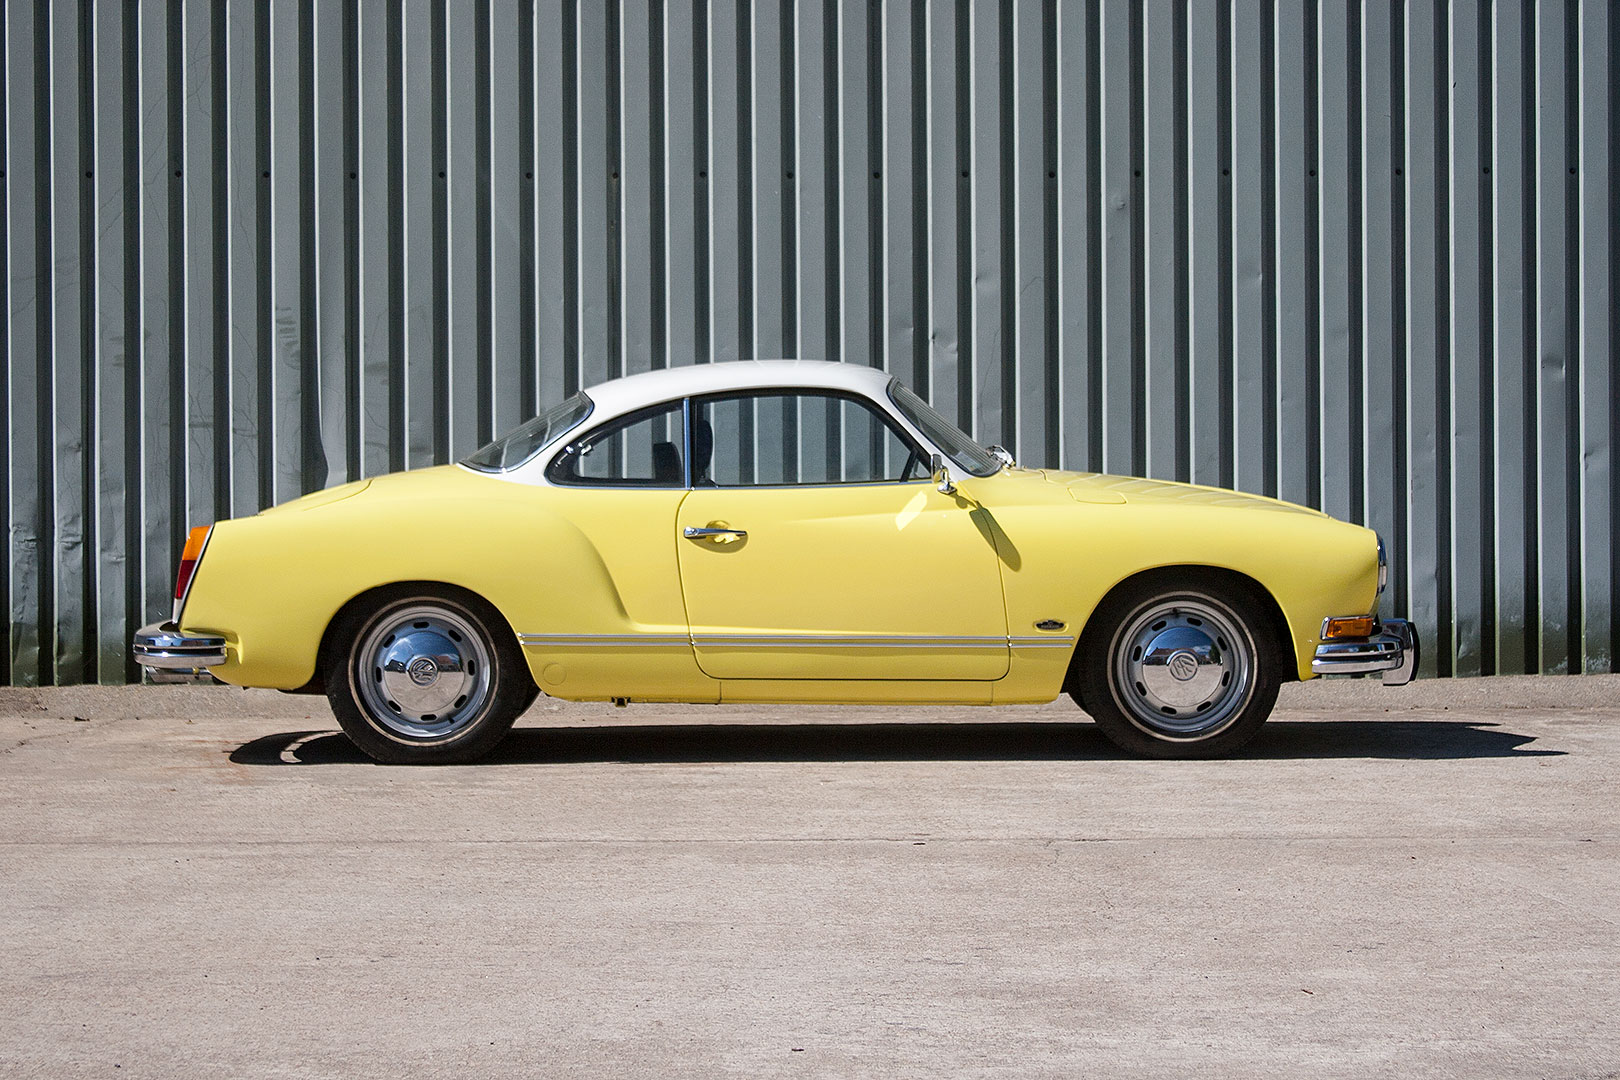 Italian Design Vw Vw Karmann Ghia 1973 Type 14 Coupe Jersey Classic And